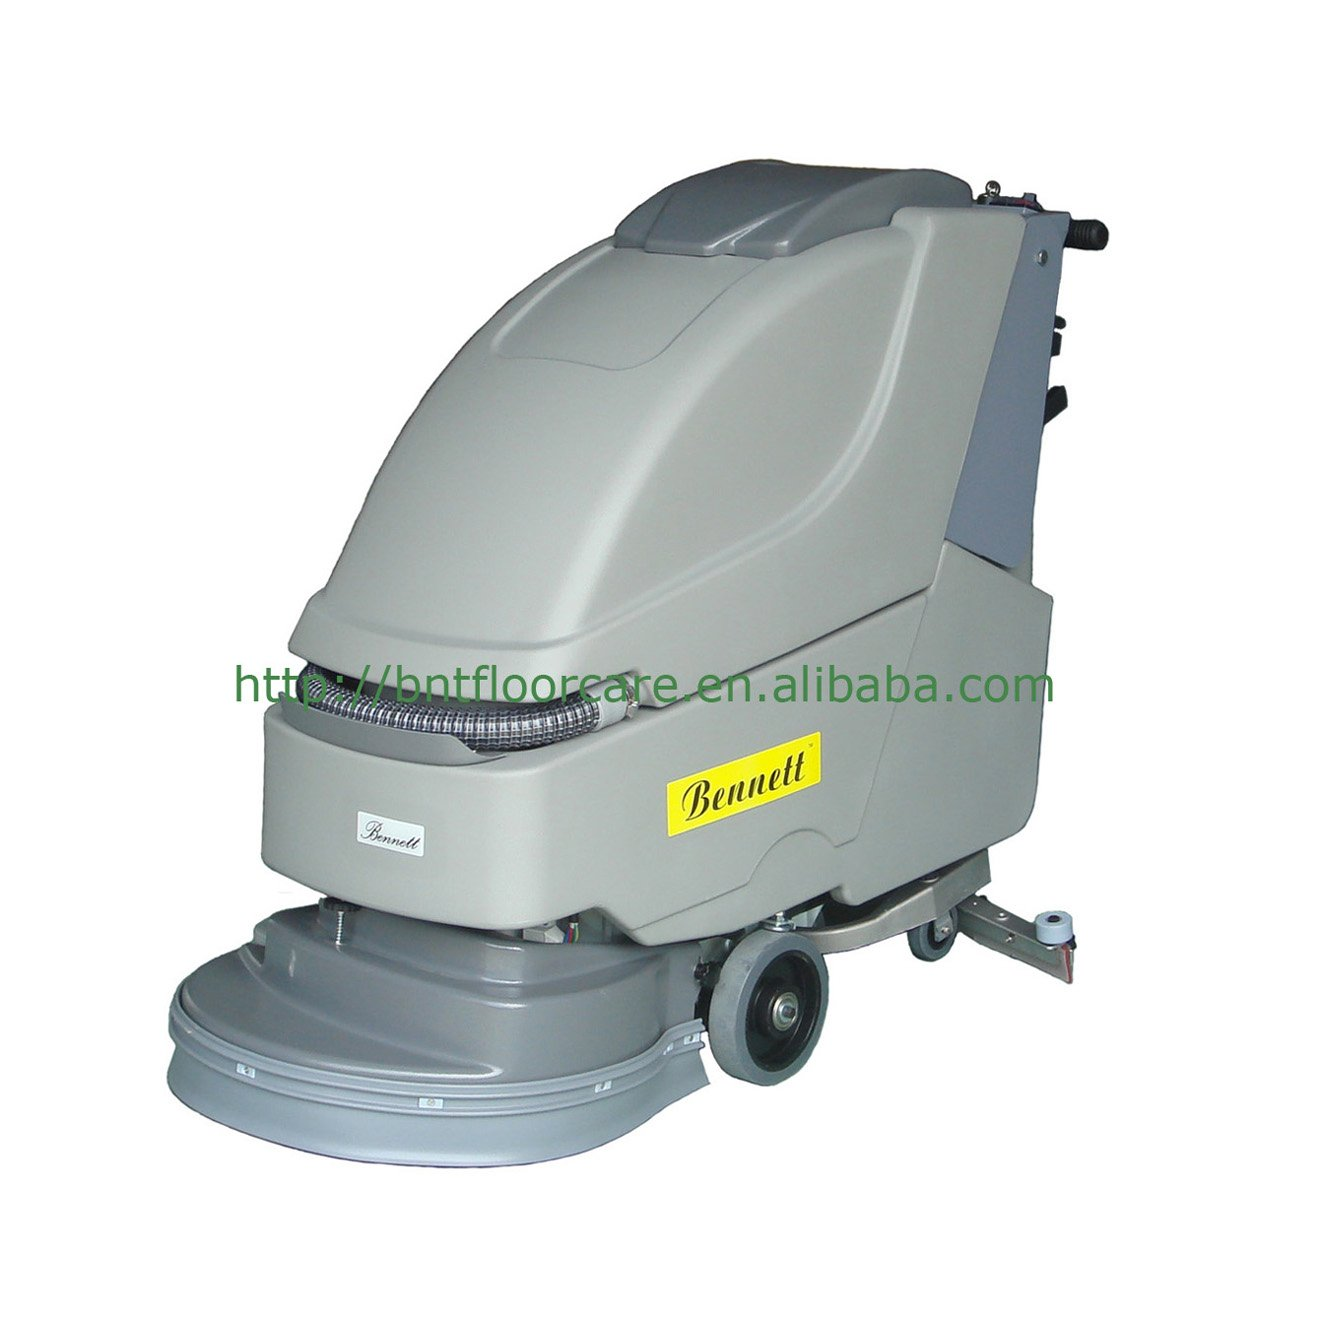 automatic floor cleaning machine pdf